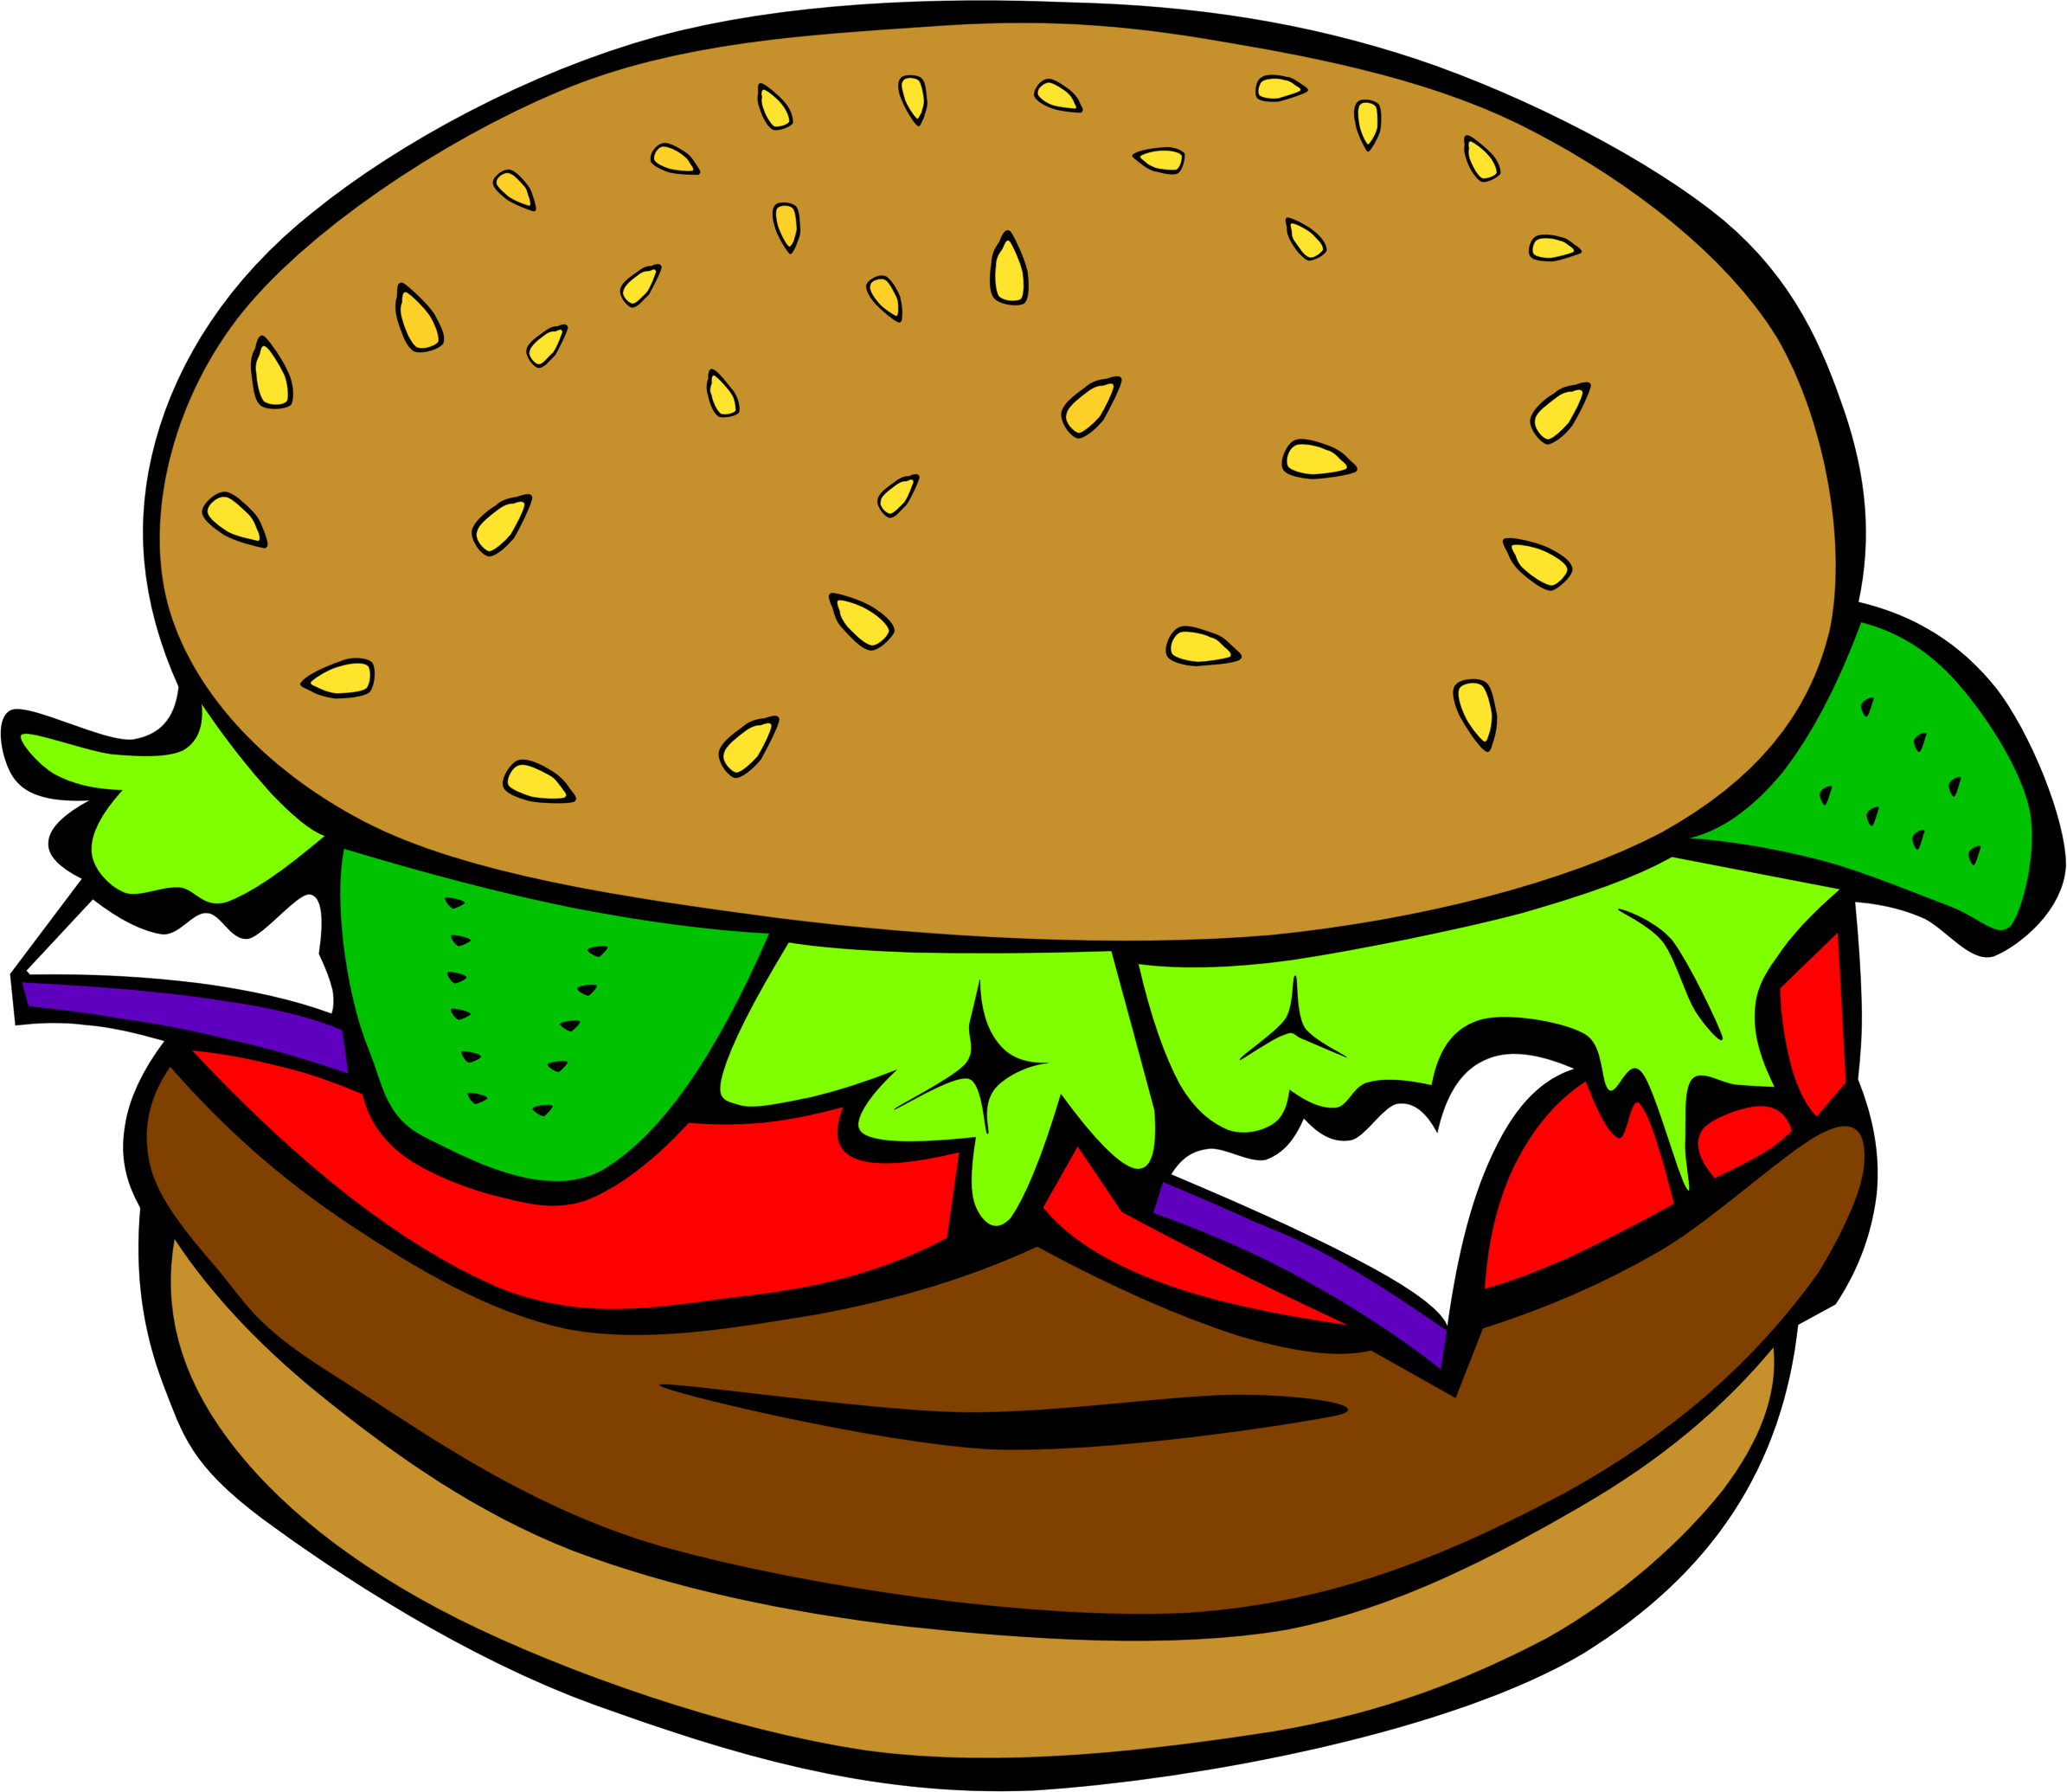 Burger with crown clipart jpg free 28+ Collection of Burger Clipart Transparent | High quality, free ... jpg free